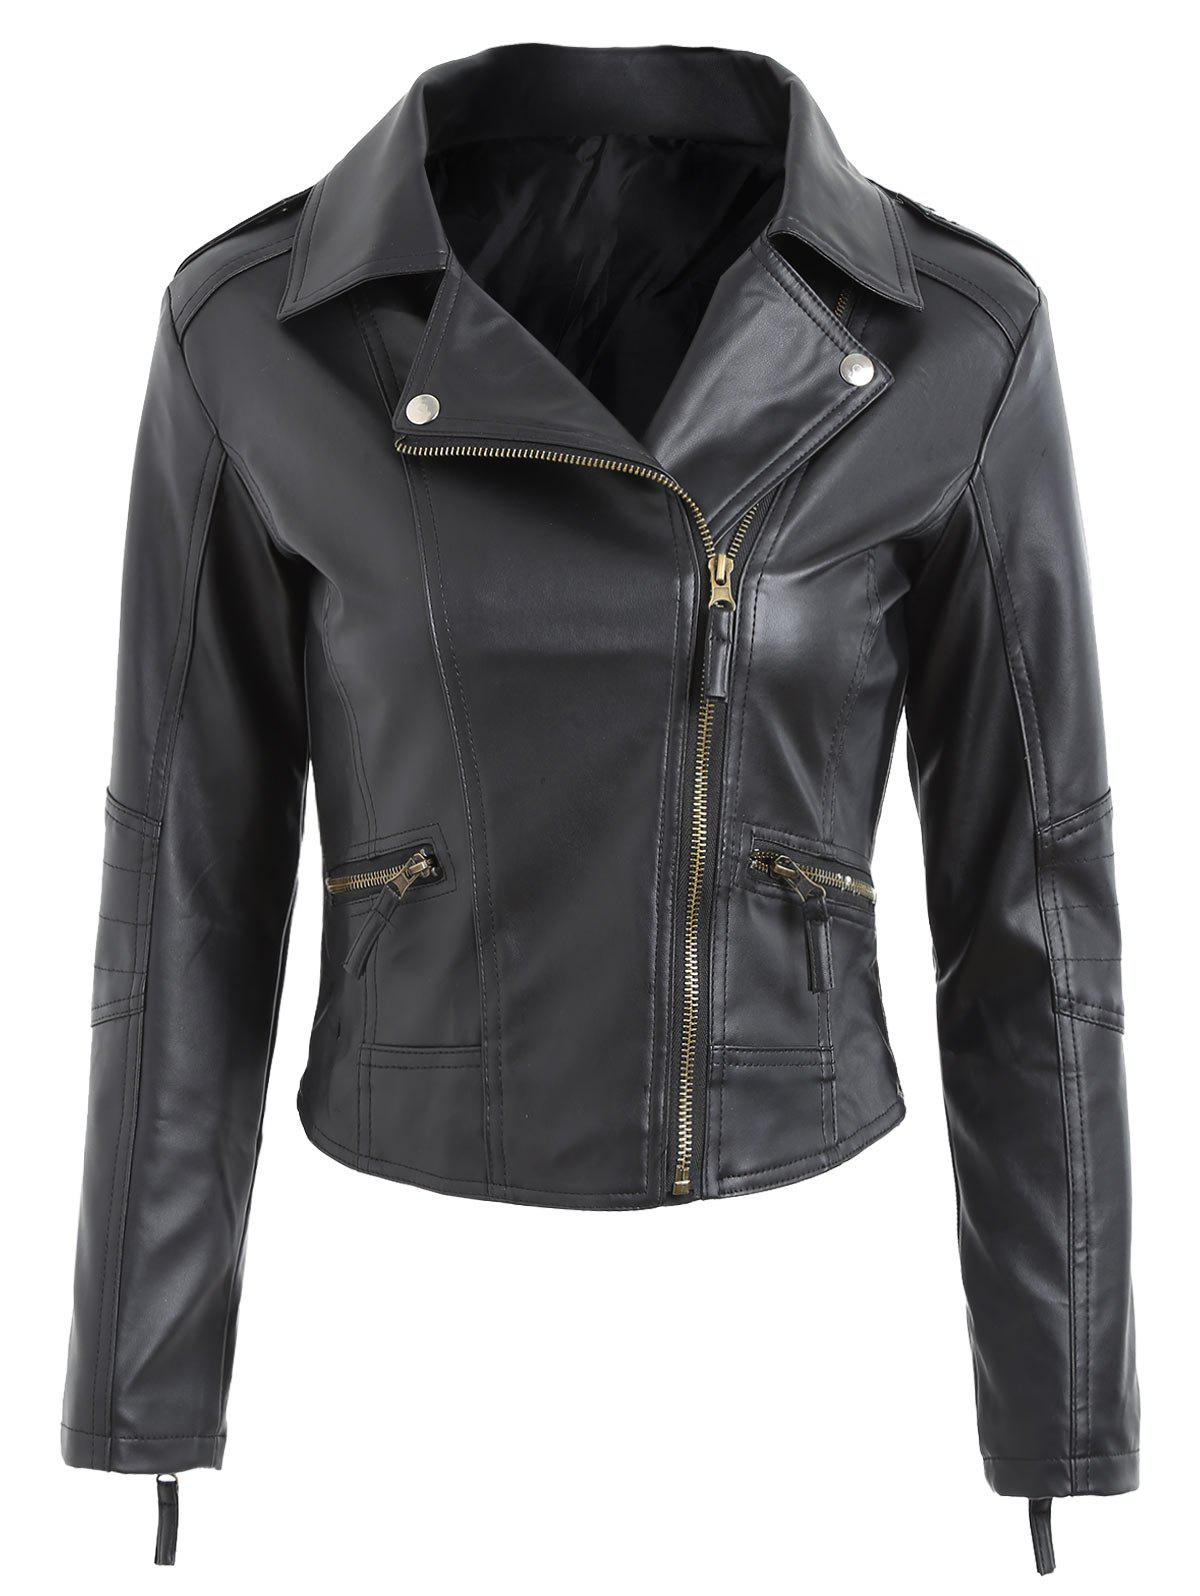 Zipper Fly Faux Leather Biker JacketWOMEN<br><br>Size: S; Color: BLACK; Clothes Type: Jackets; Material: Faux Leather,Polyester; Type: Slim; Shirt Length: Regular; Sleeve Length: Full; Collar: Turn-down Collar; Pattern Type: Solid; Style: Fashion; Season: Fall,Spring; Weight: 0.5500kg; Package Contents: 1 x Jacket;